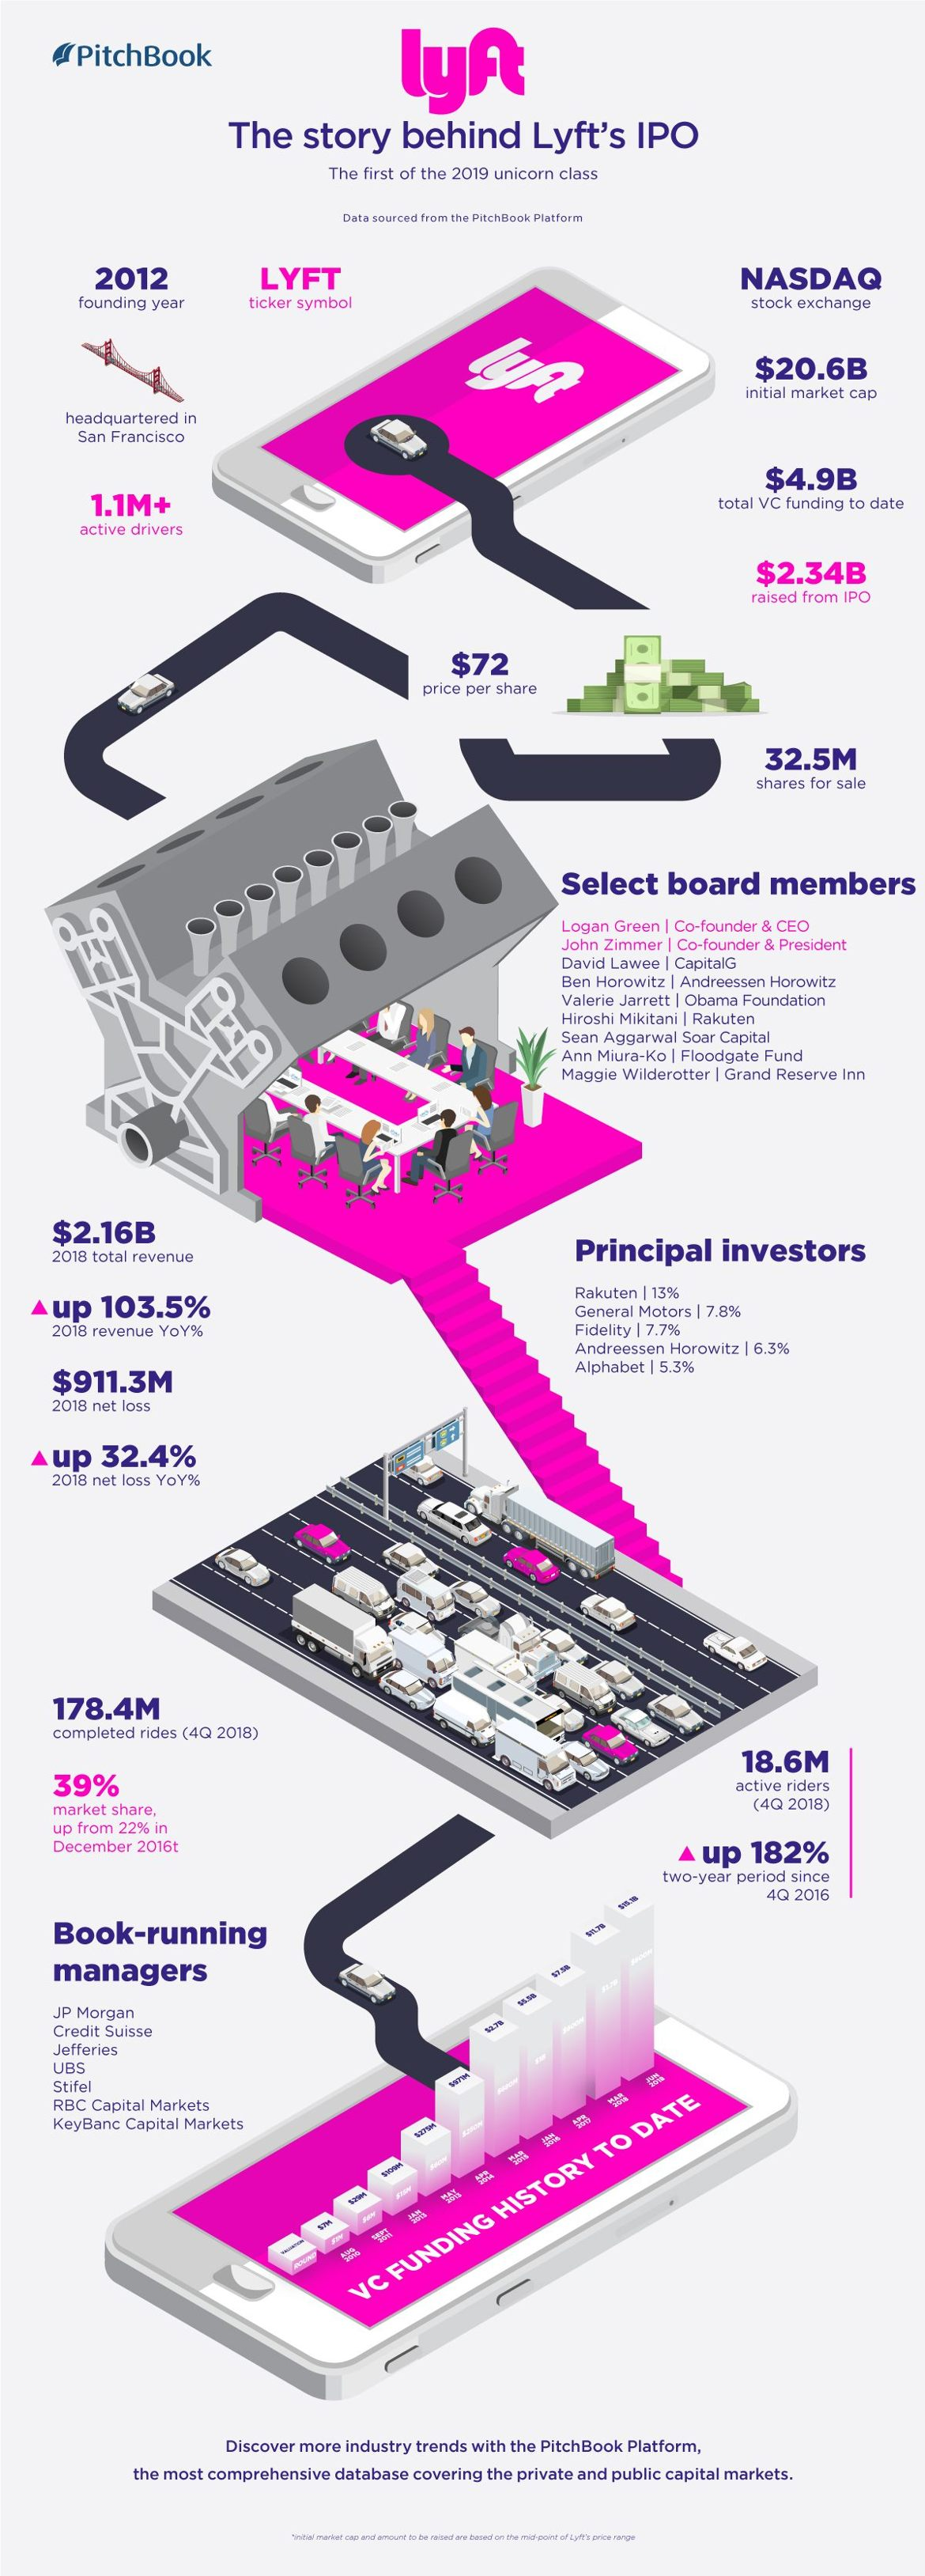 A look at Lyft's ride from founding to IPO [datagraphic]